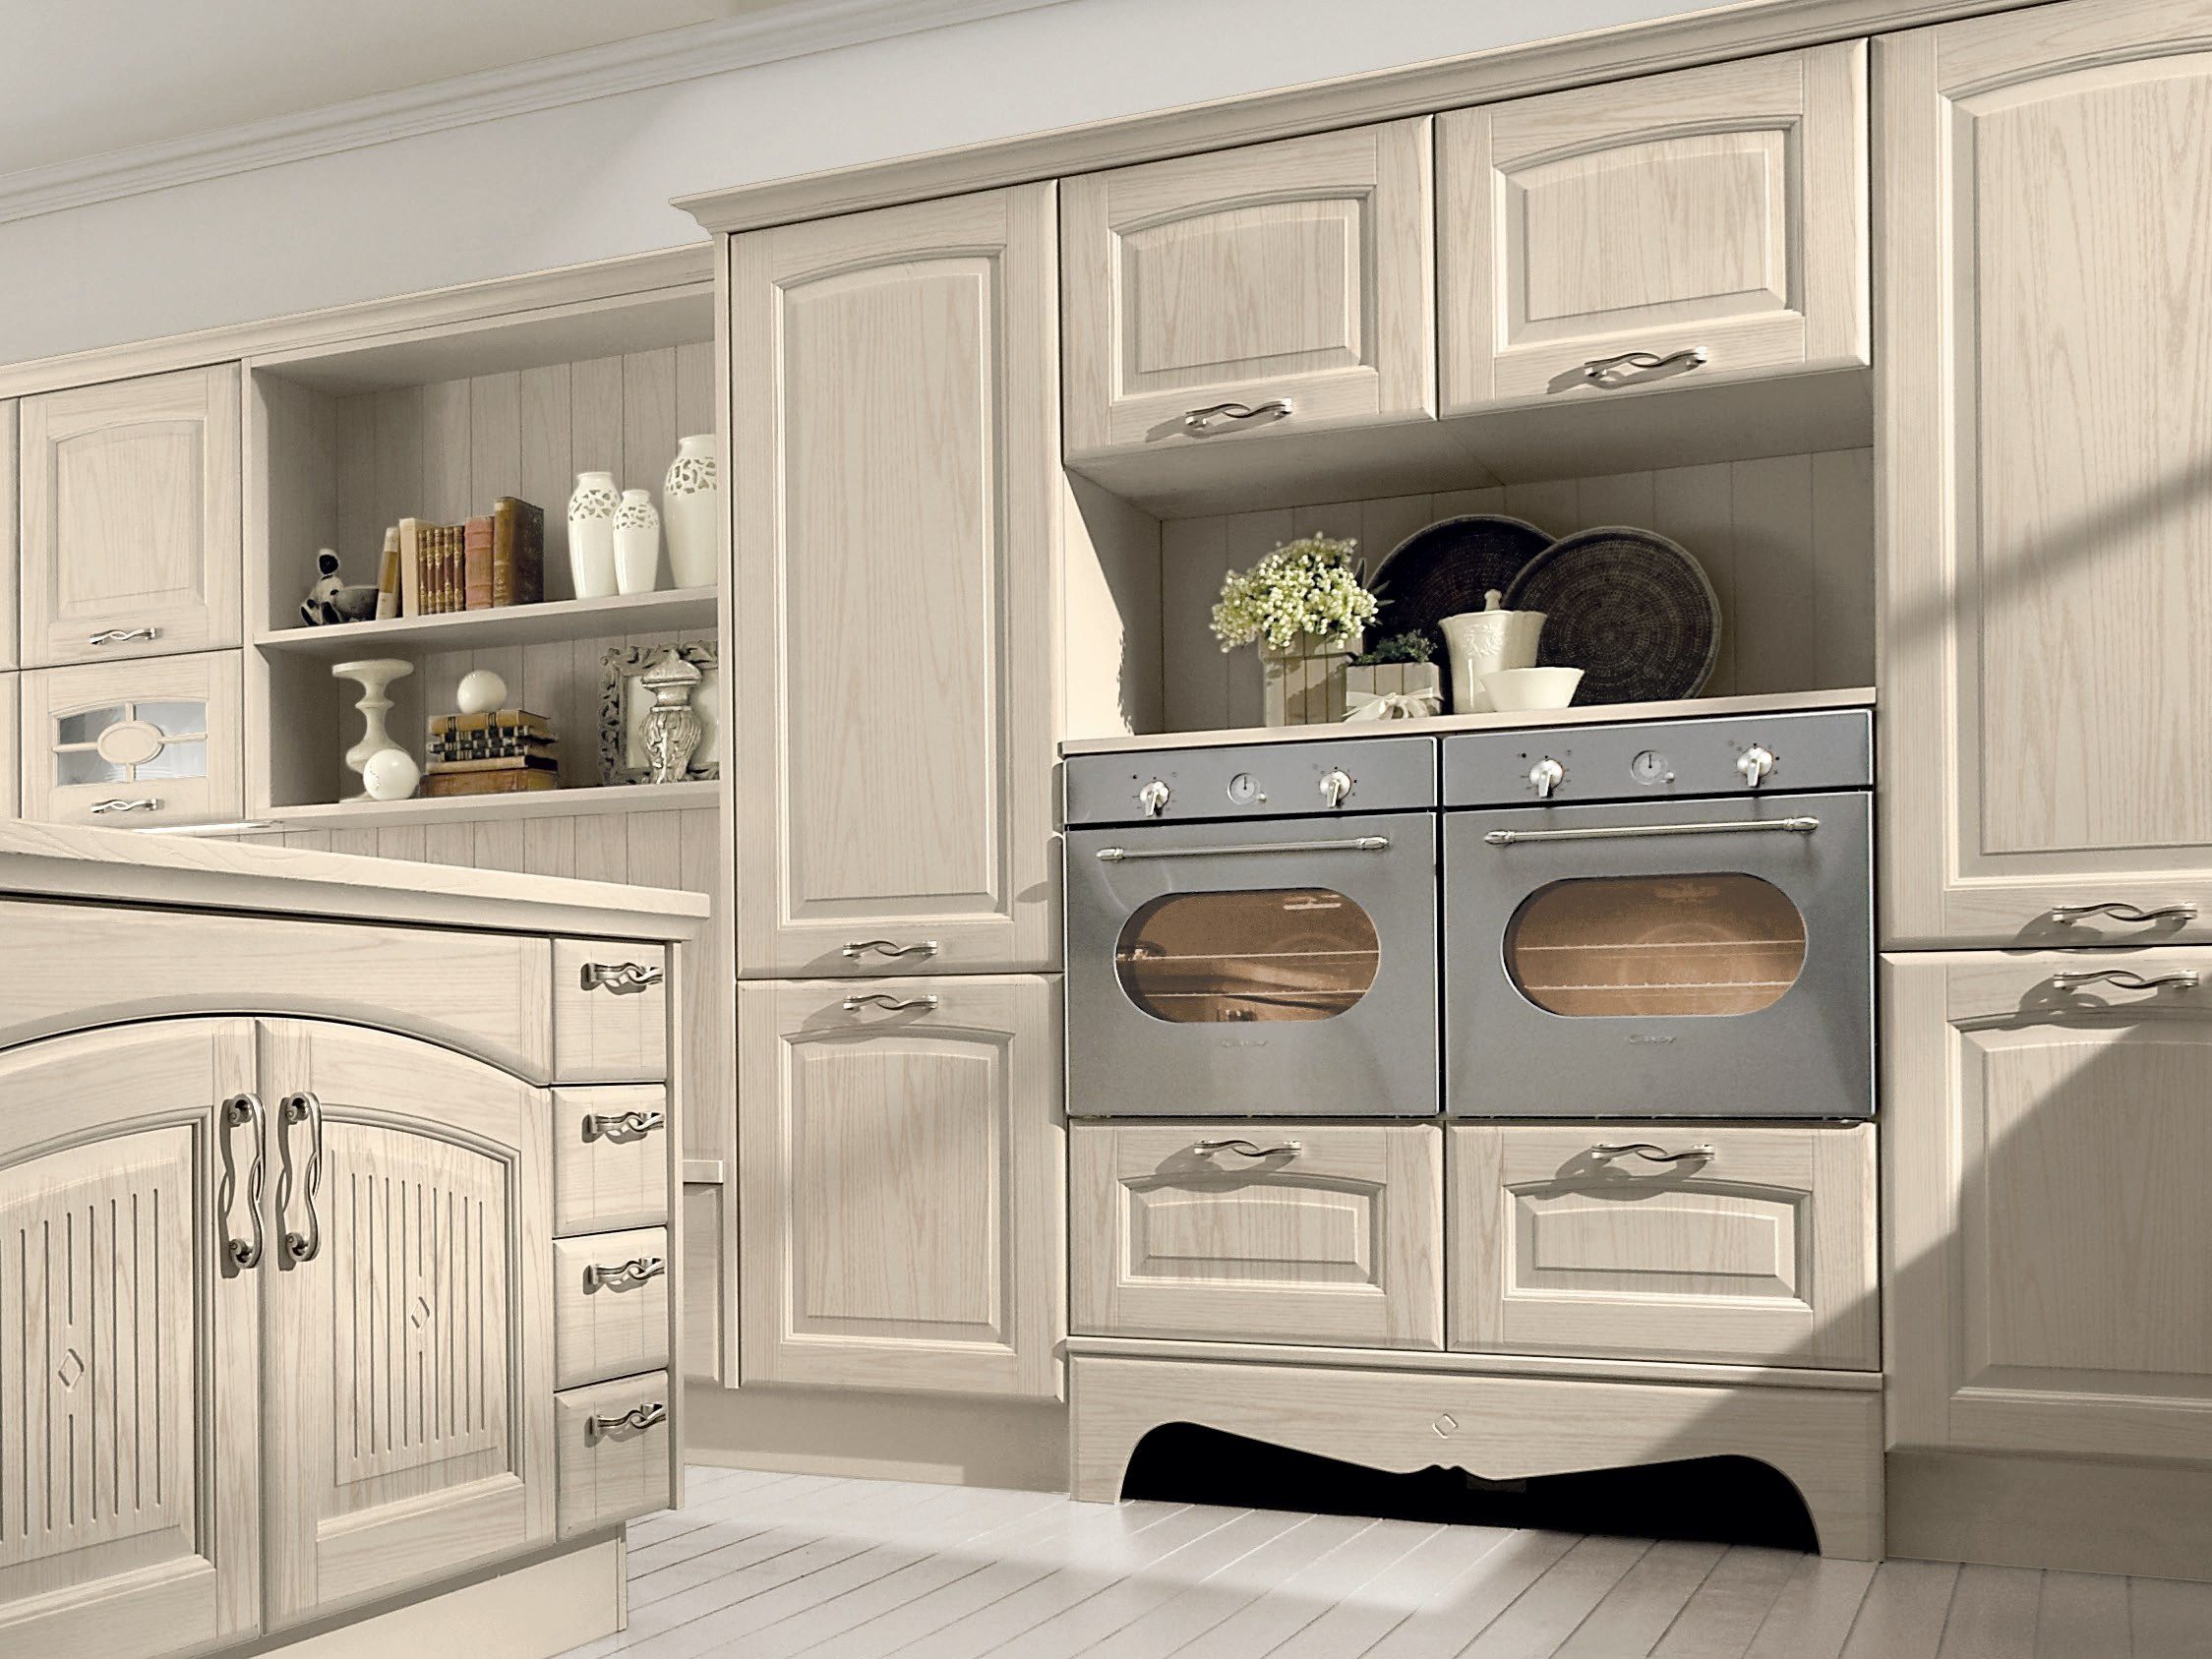 VERONICA Cucina by Cucine Lube